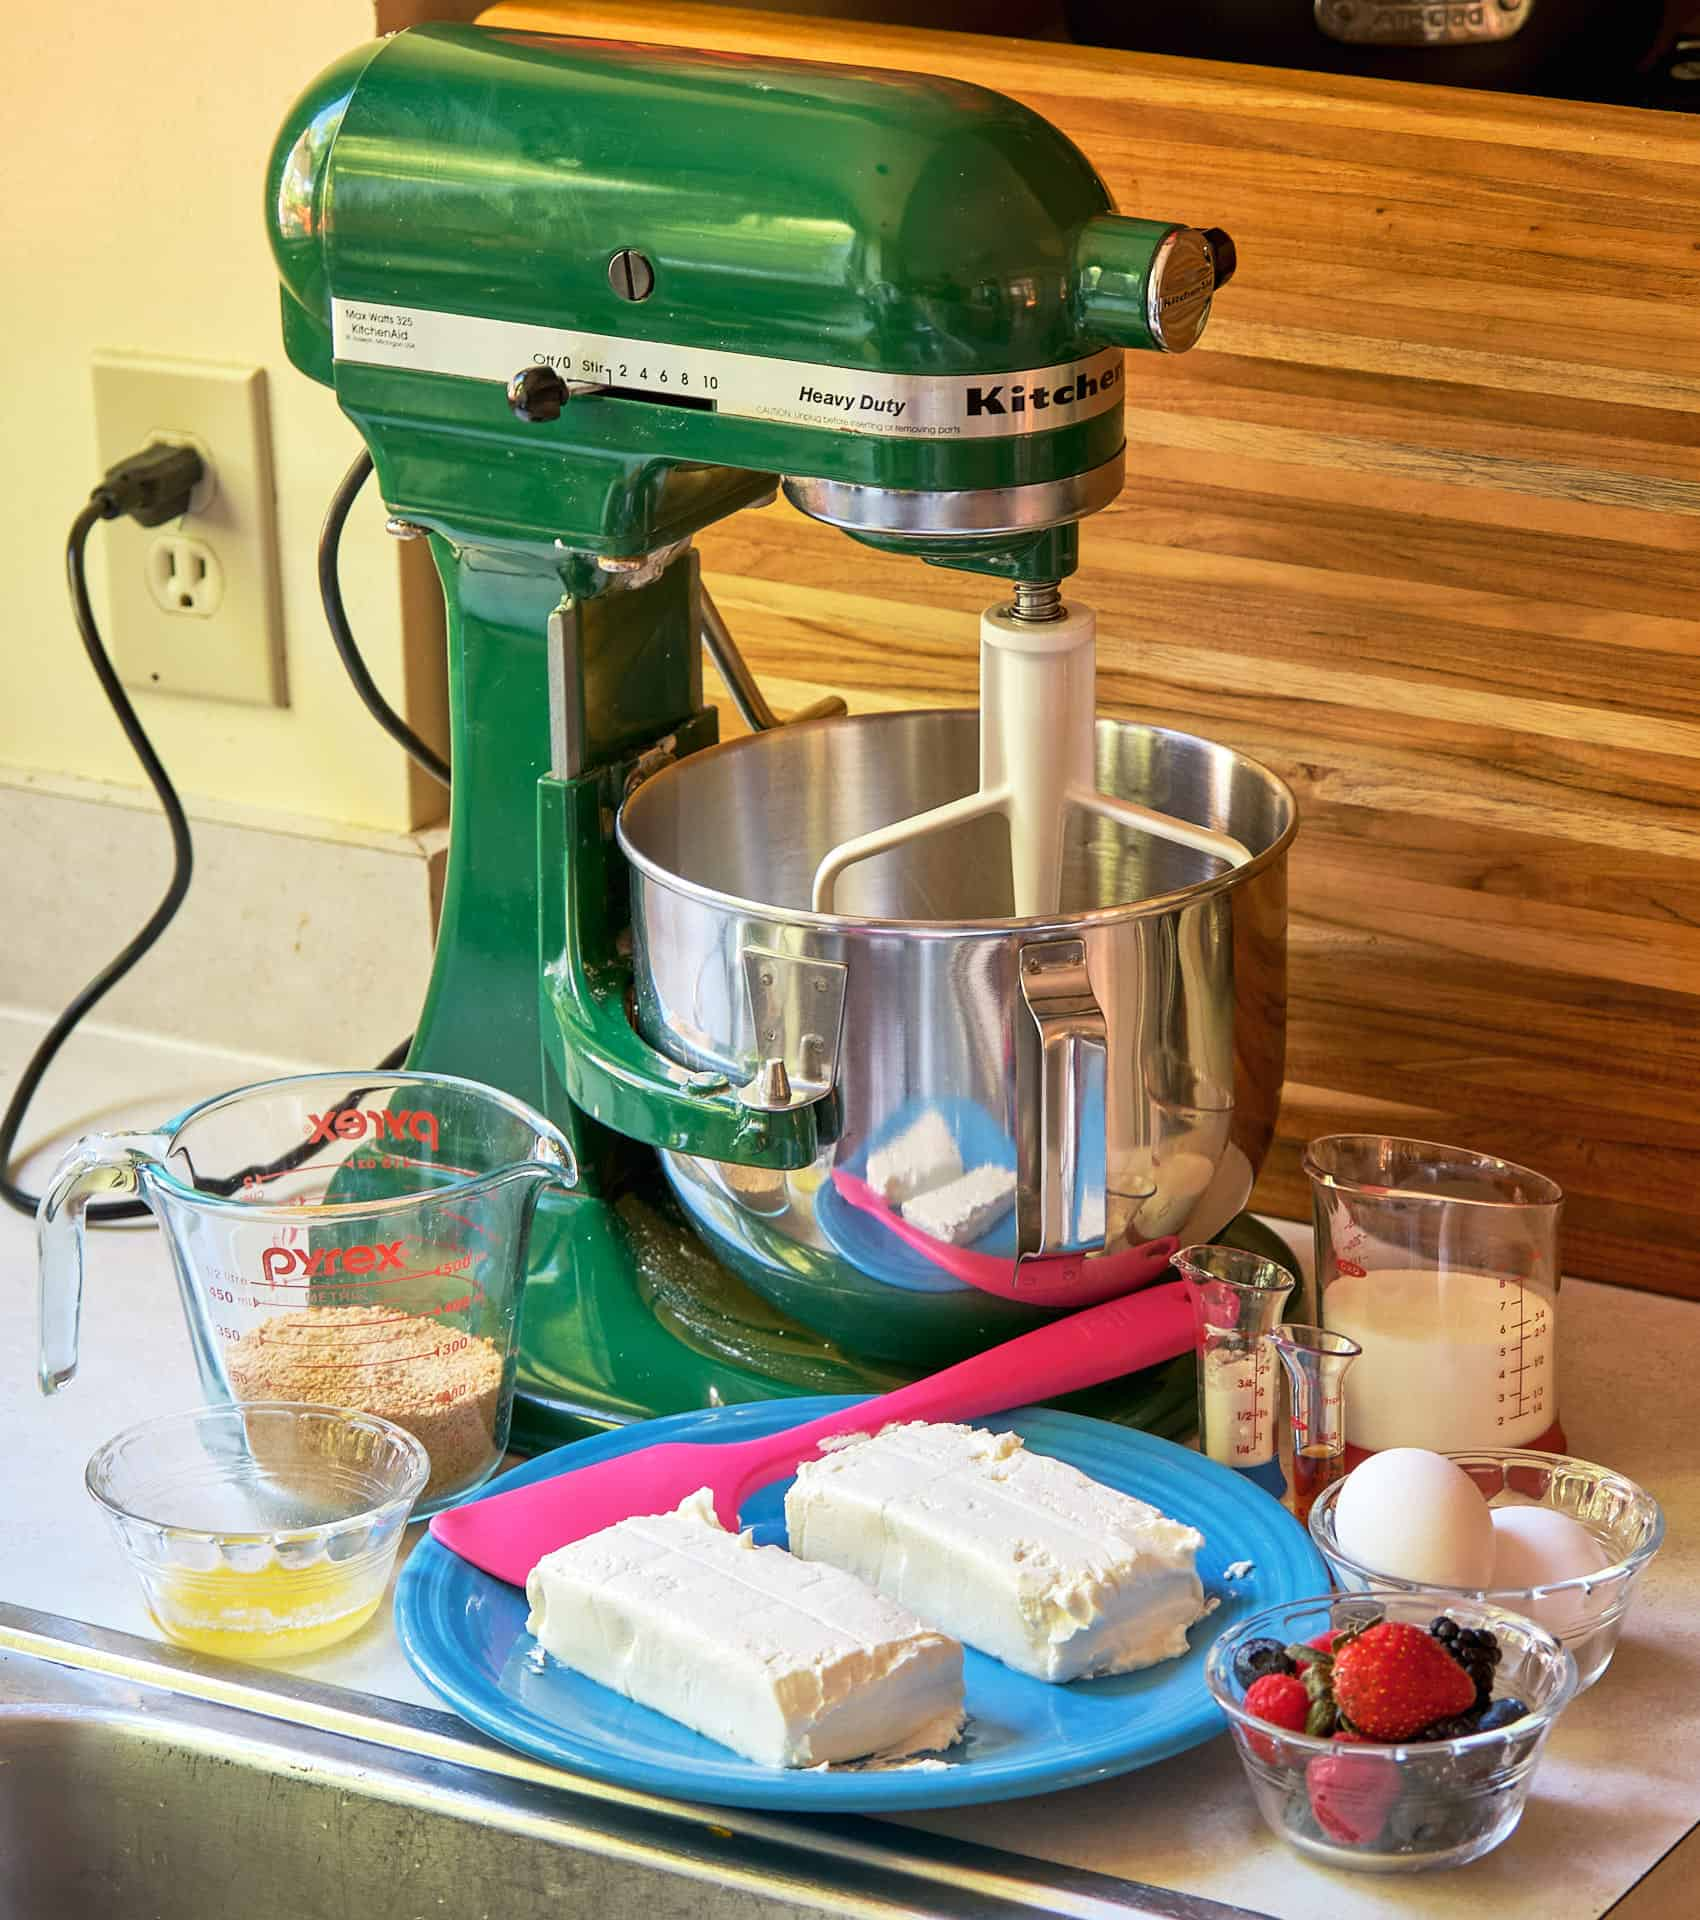 A green stand mixer in front of plates, bowls, and measuring cups holding the ingredients for berry cheesecake